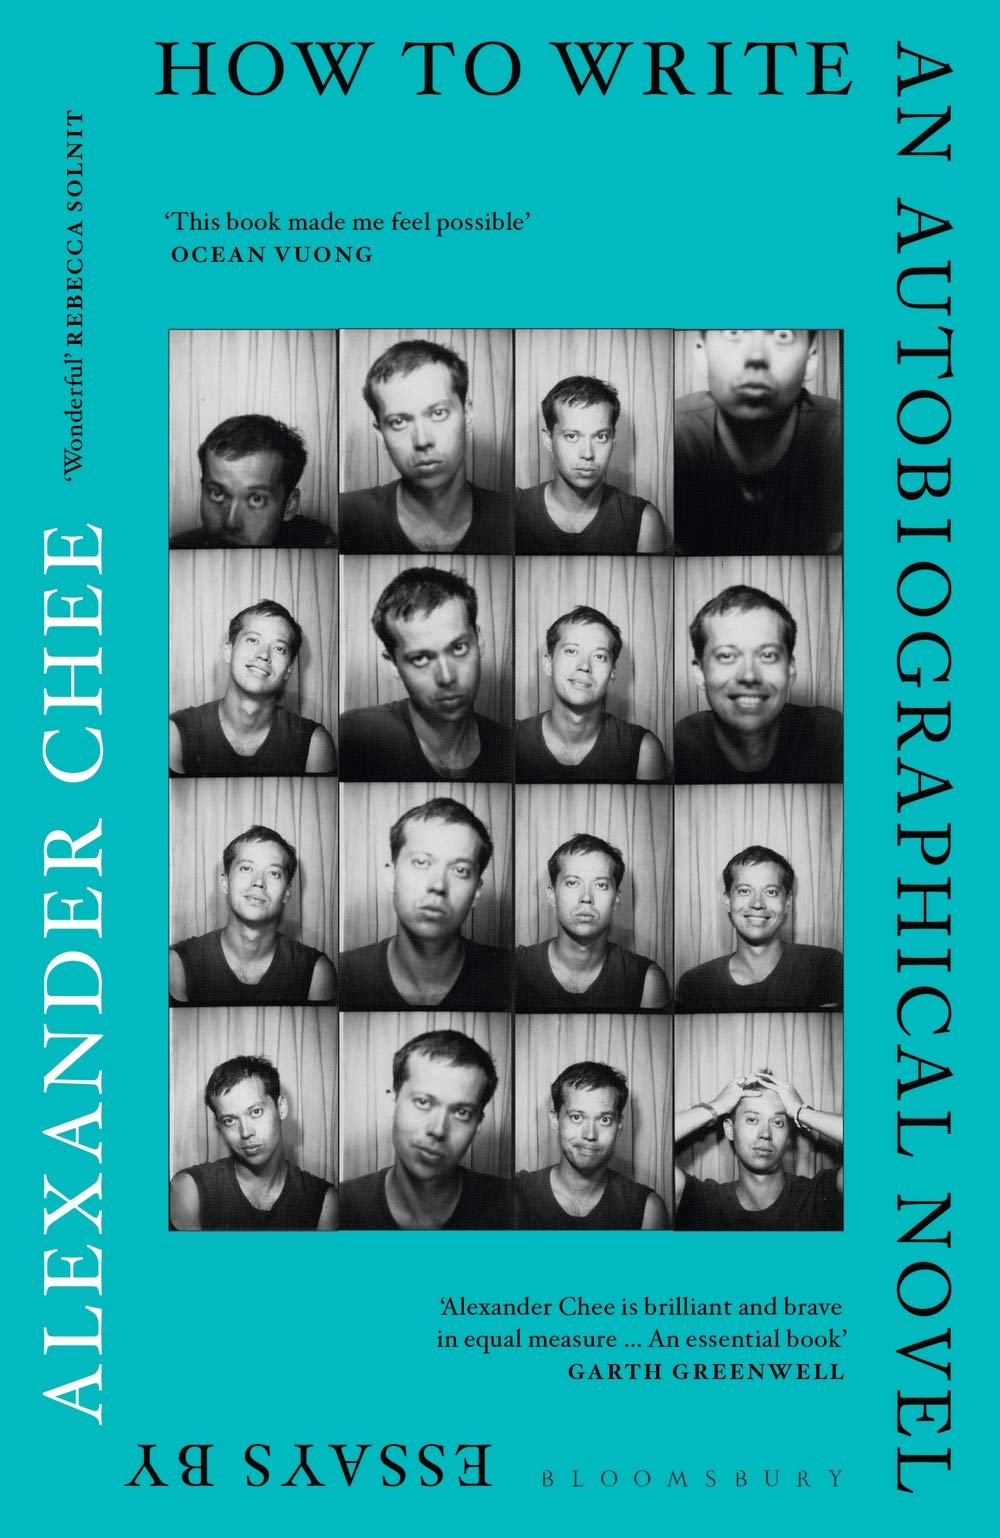 How to Write an Autobiographical Novel : Chee, Alexander: Amazon